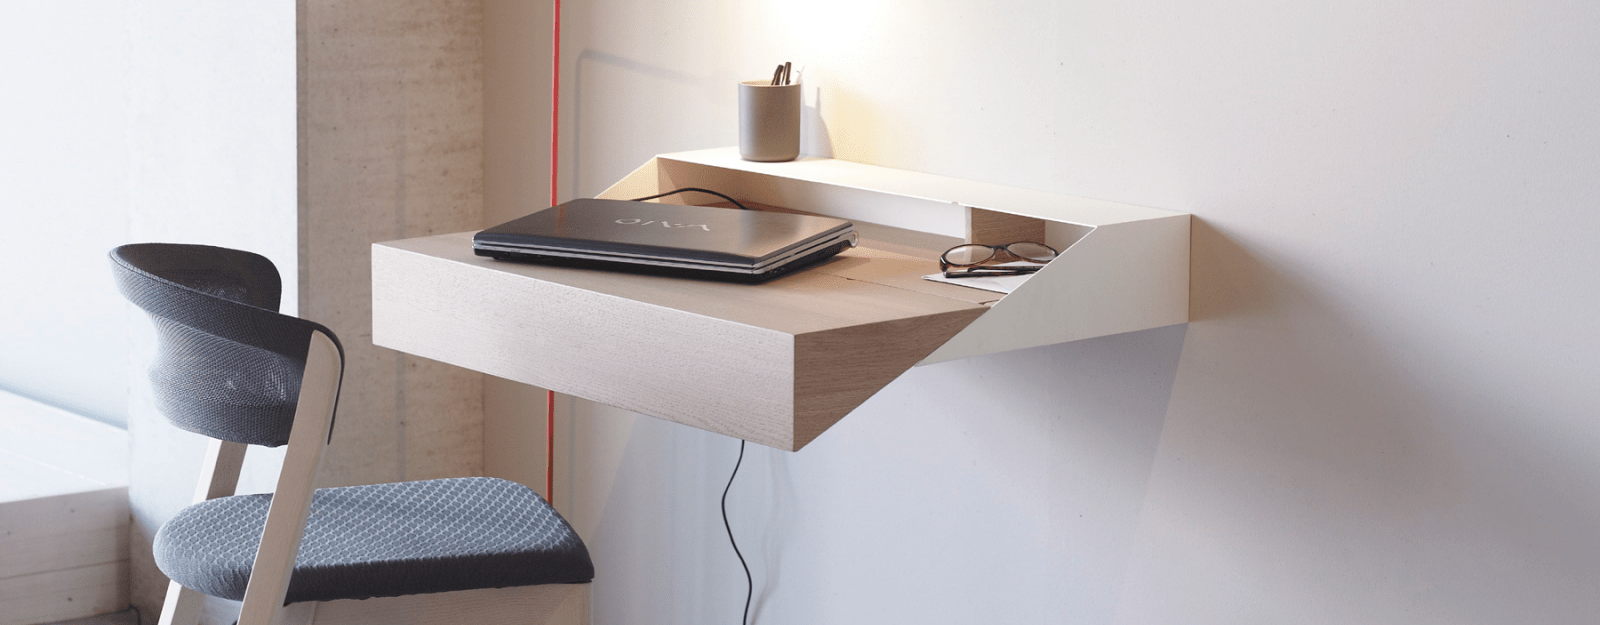 Wall Mounted Desks For Small Spaces Get To Work At These 9 Wall Mounted Desks Core77